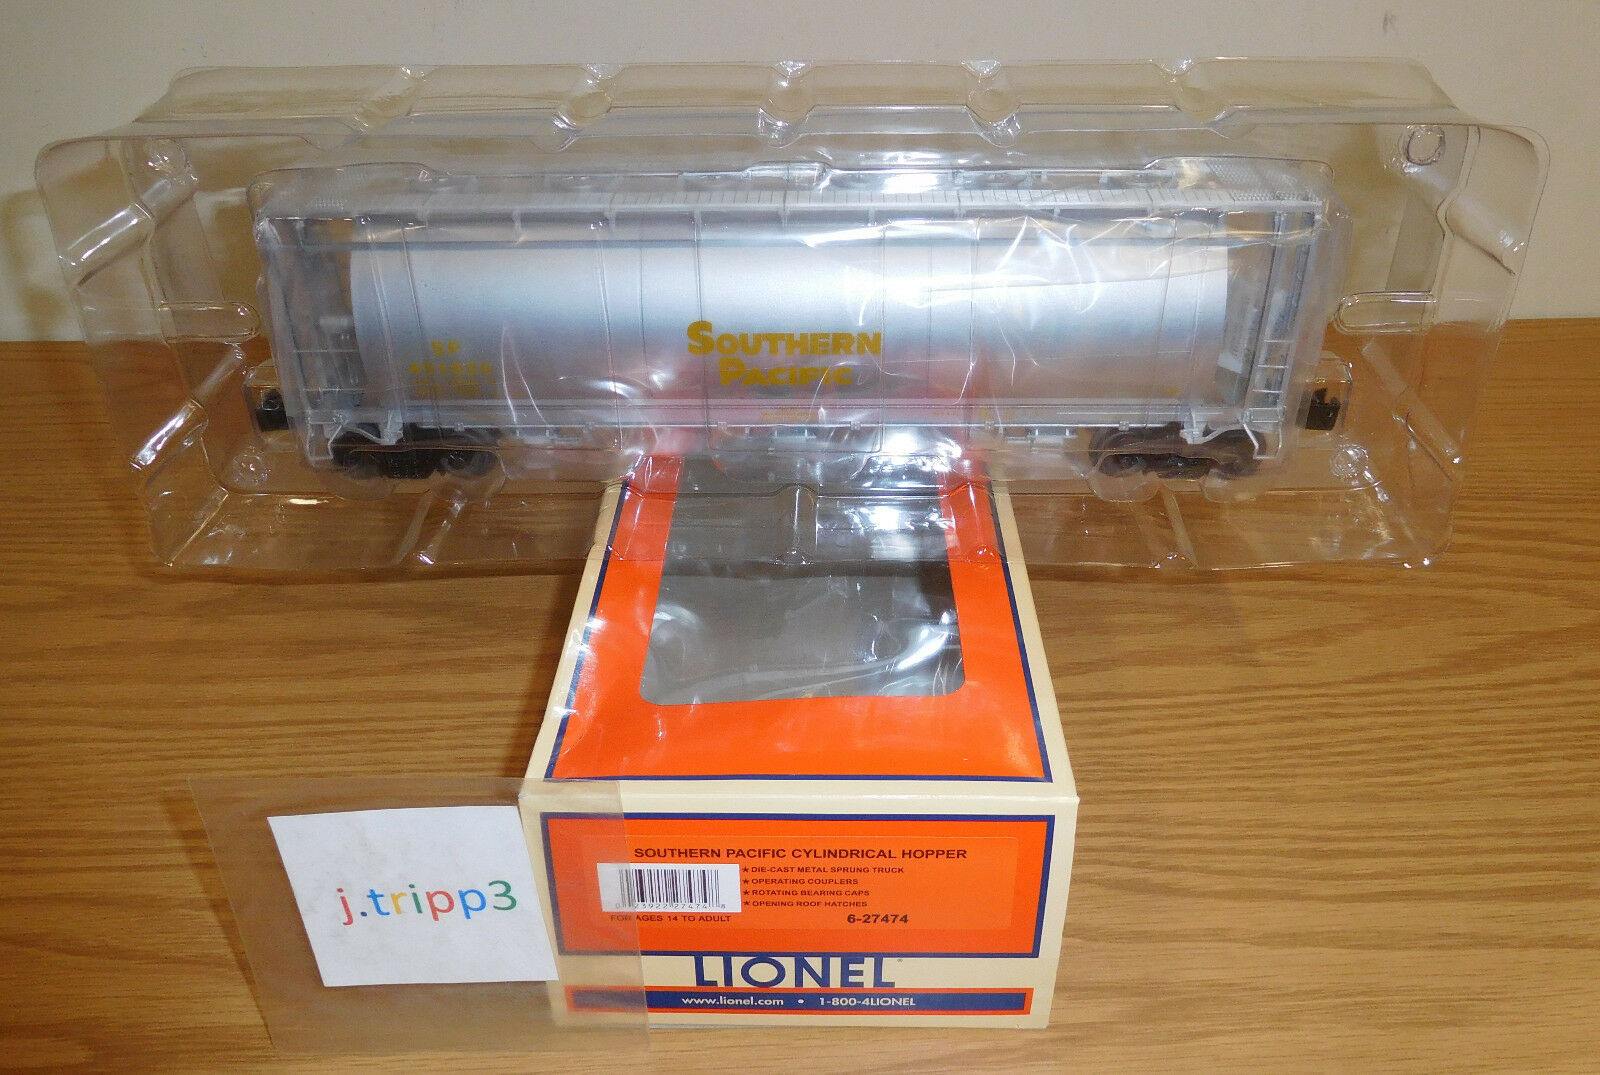 LIONEL 6-27474 SOUTHERN SOUTHERN SOUTHERN PACIFIC SP CYLINDRICAL HOPPER TRAIN O SCALE CAR FREIGHT 8a65a3